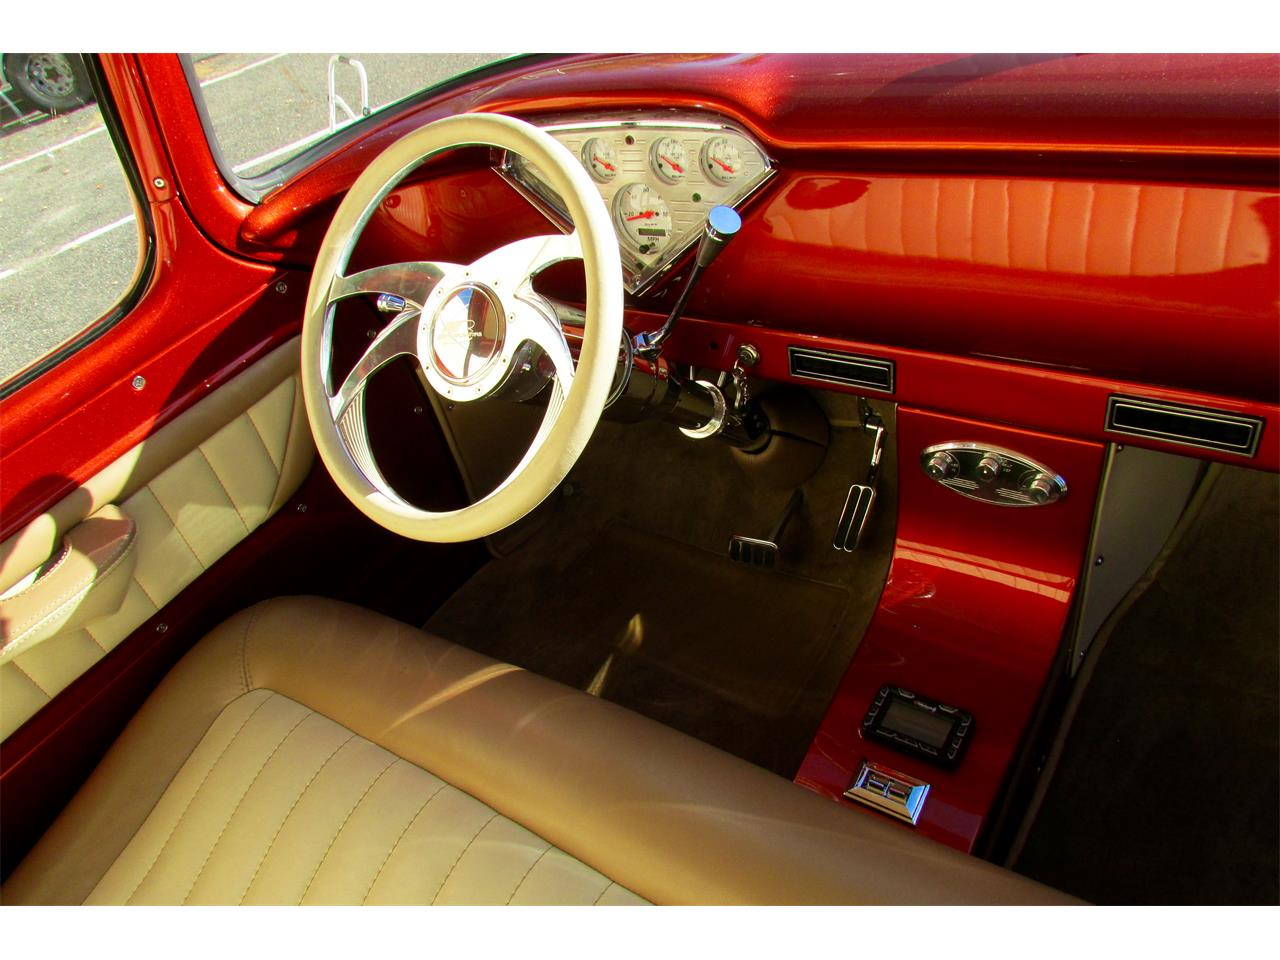 Large Picture of 1959 Chevrolet Fleetside Custom Pickup Truck  located in Framingham Massachusetts - $169,000.00 - JPTV